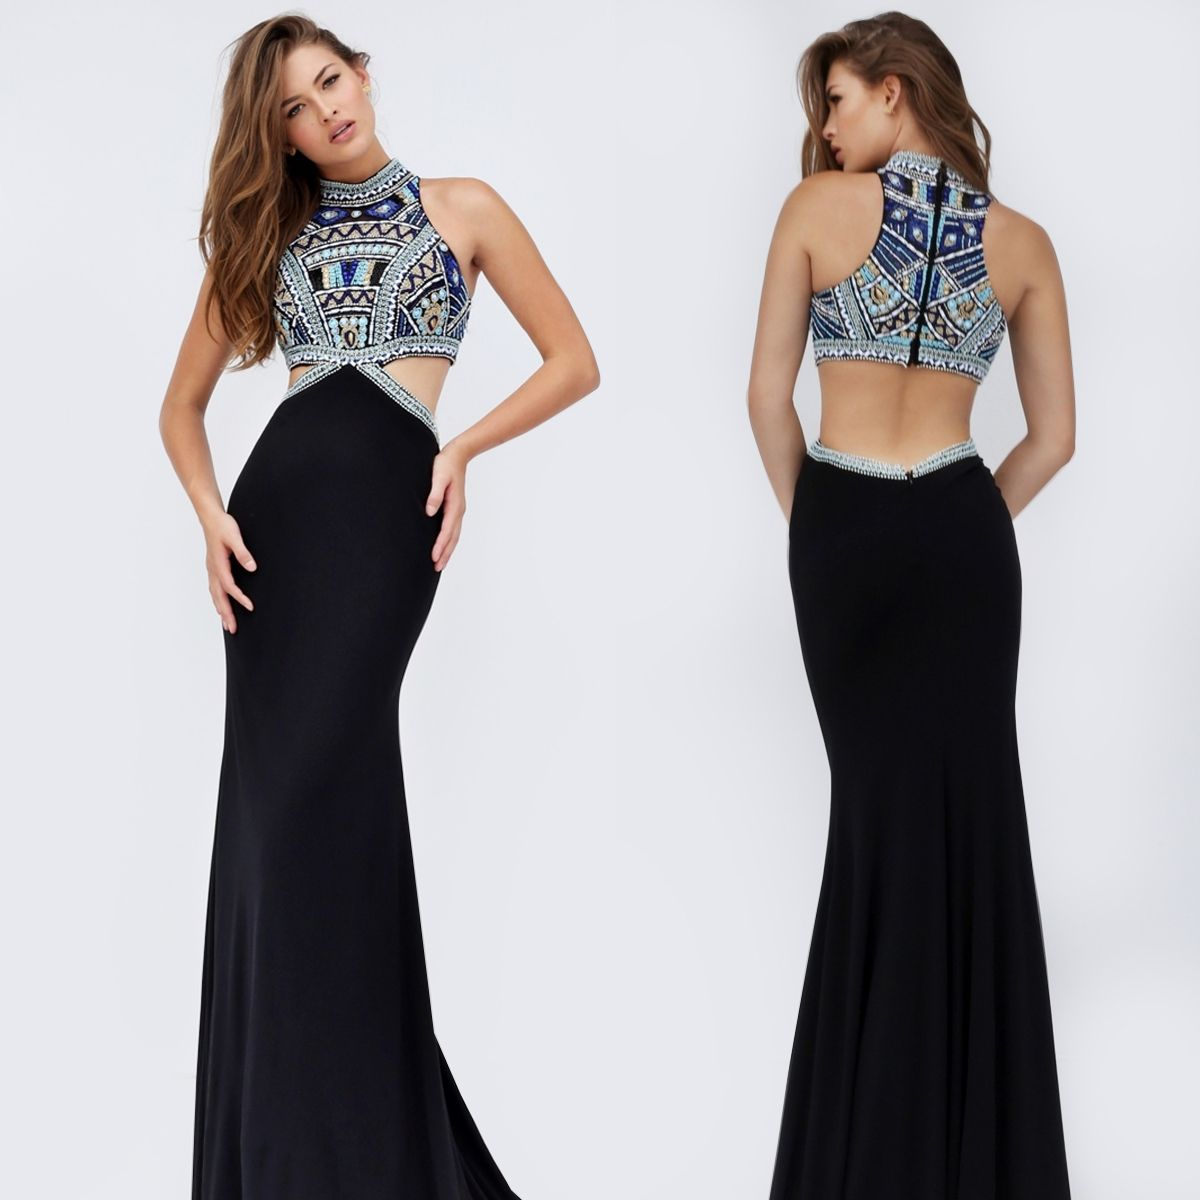 Mock two piece high neck black sherri hill gown dresses